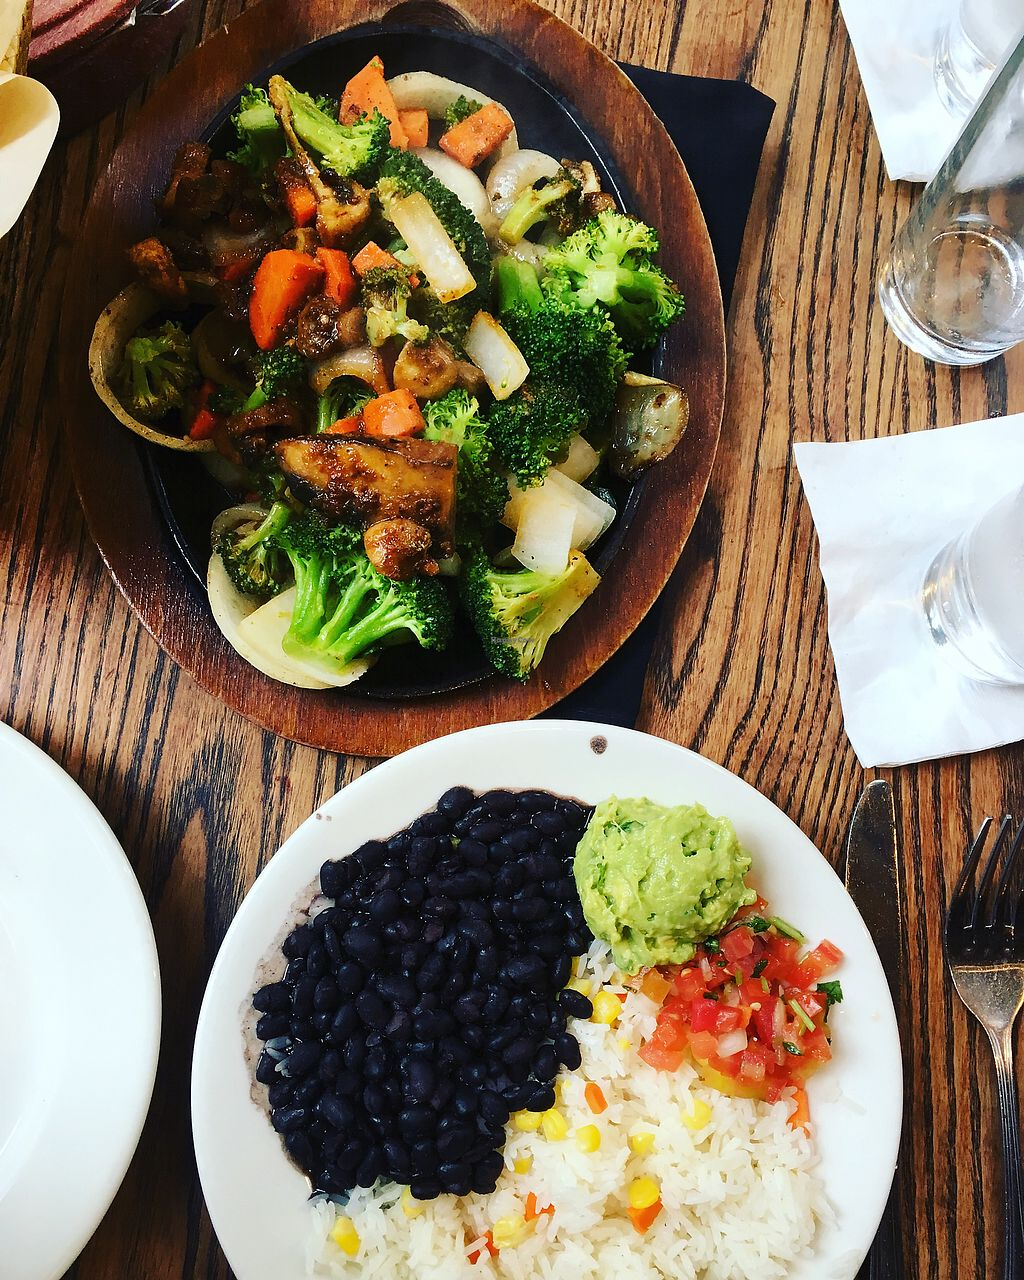 "Photo of Mexico Cantina y Concina  by <a href=""/members/profile/JessicaAllens"">JessicaAllens</a> <br/>Veggie fajitas without dairy— sooo delicious  <br/> December 23, 2017  - <a href='/contact/abuse/image/25678/338265'>Report</a>"